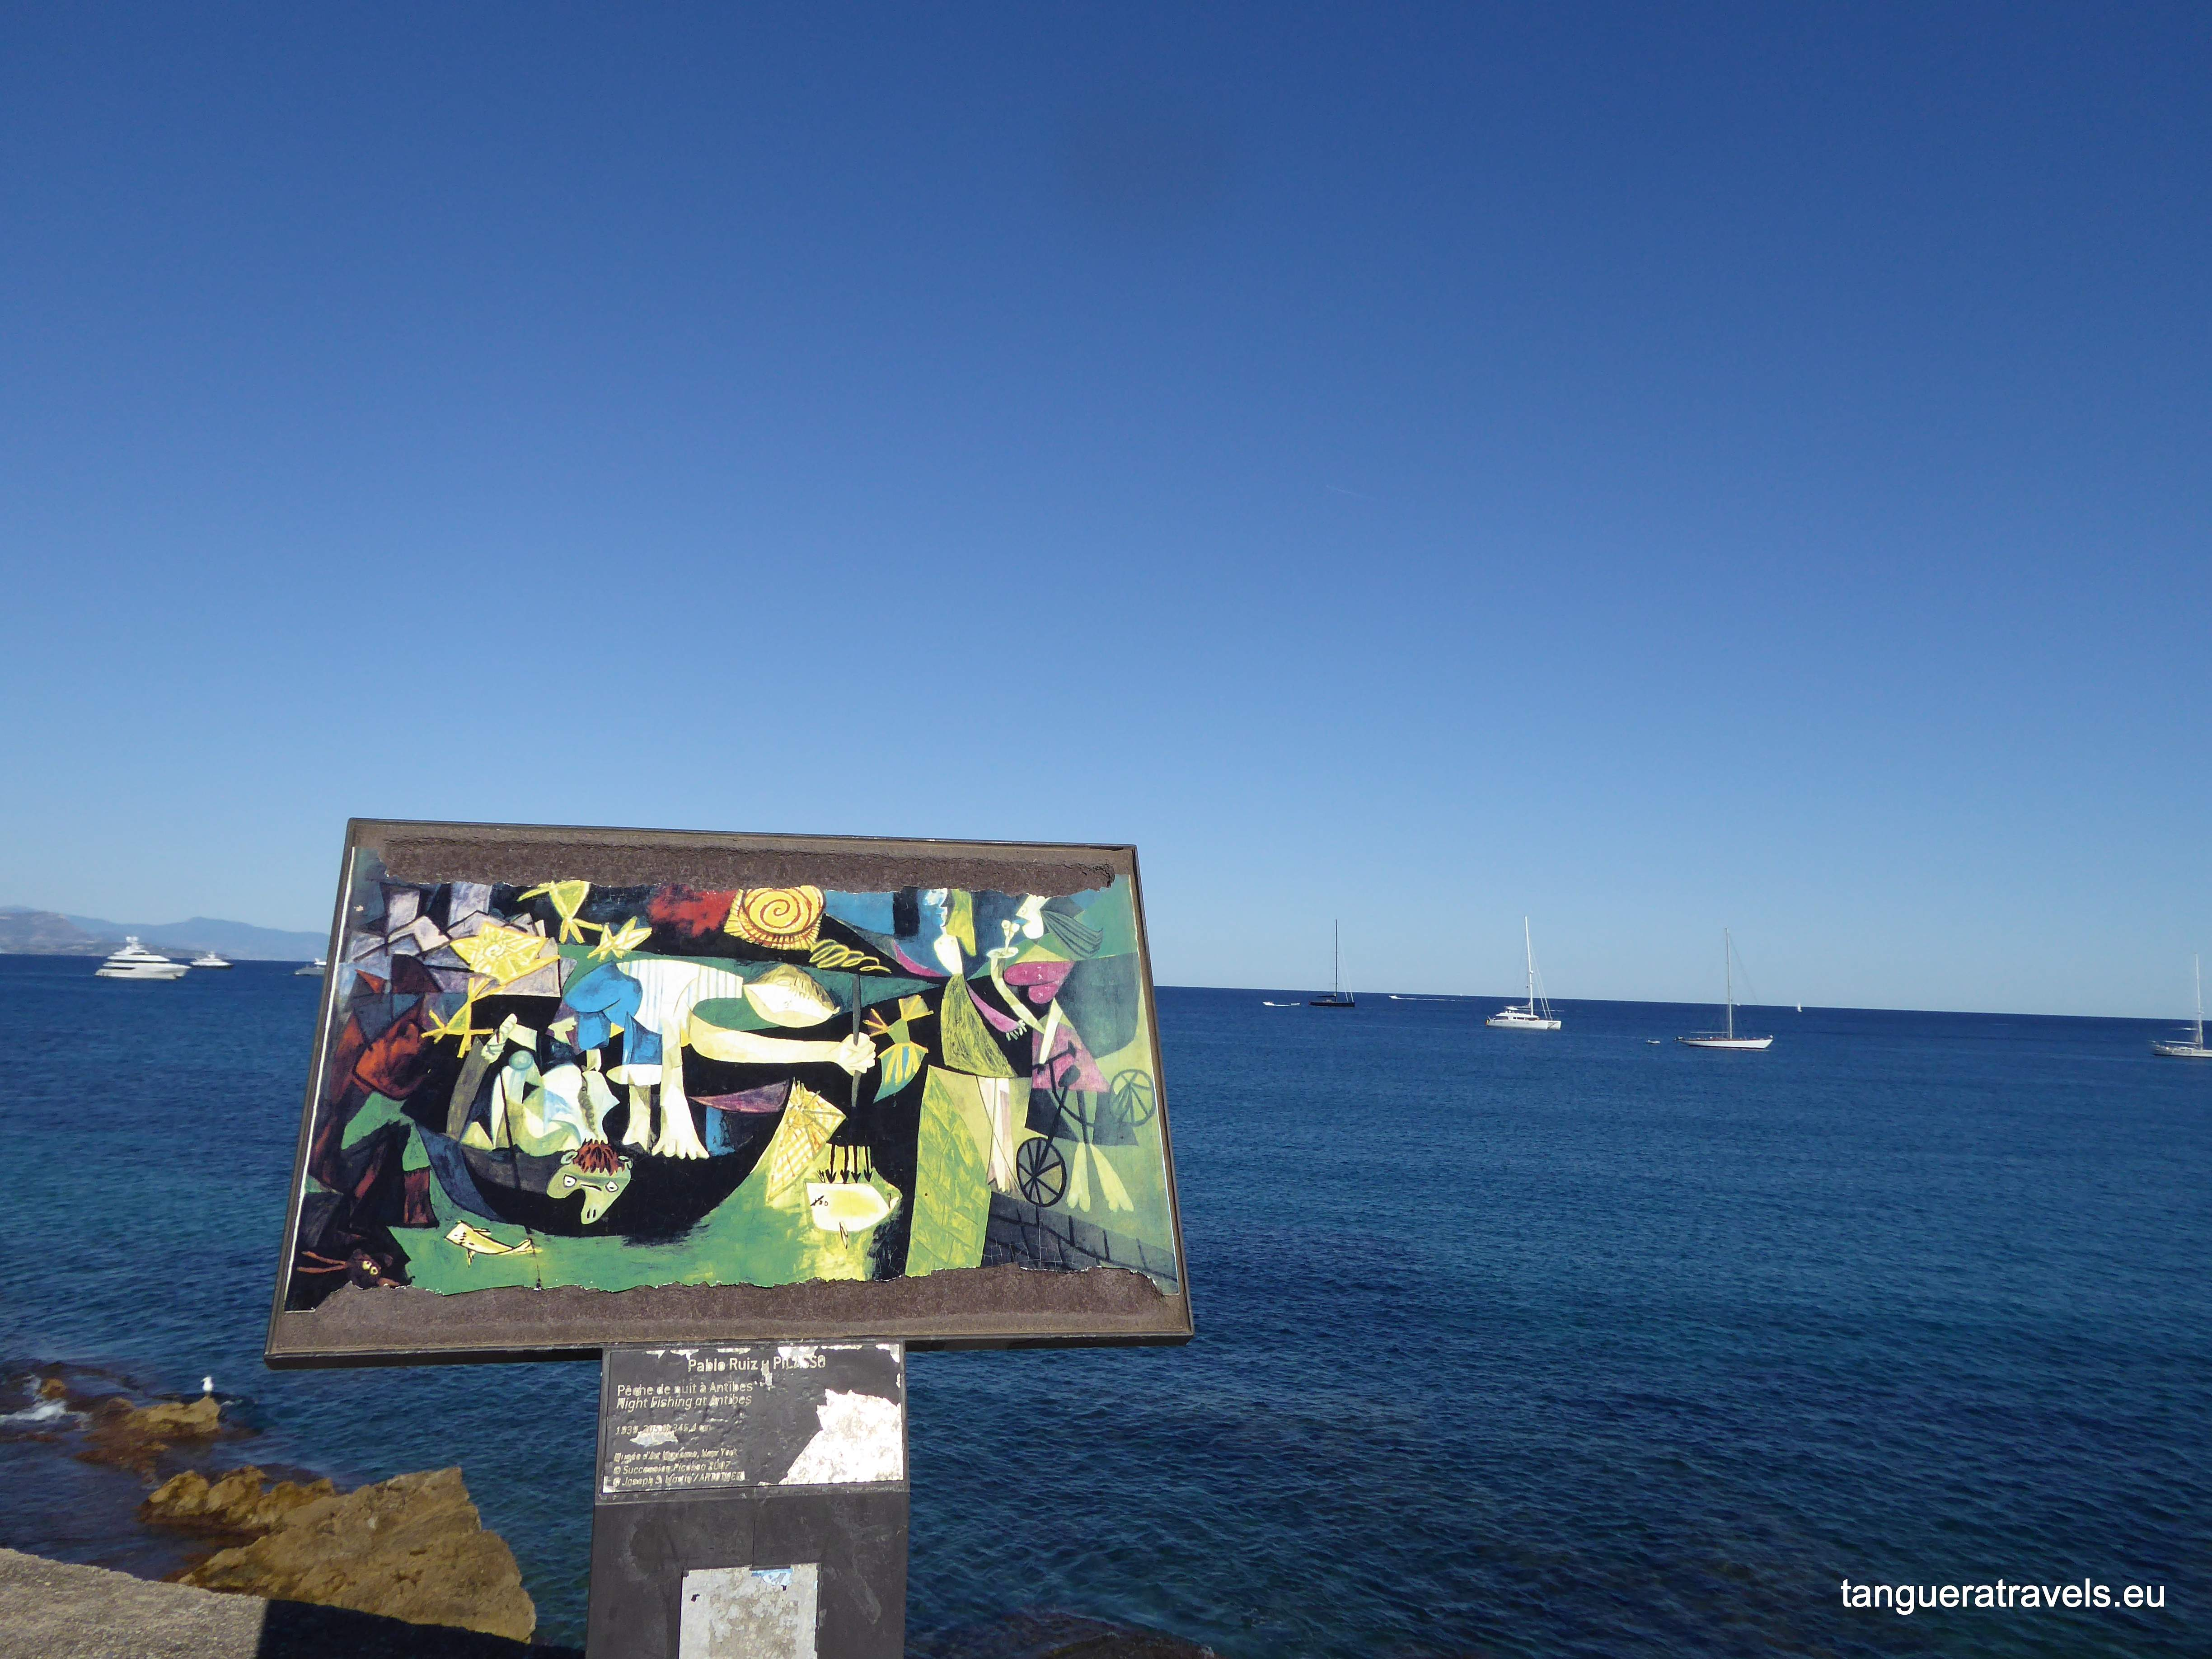 Picasso by the sea